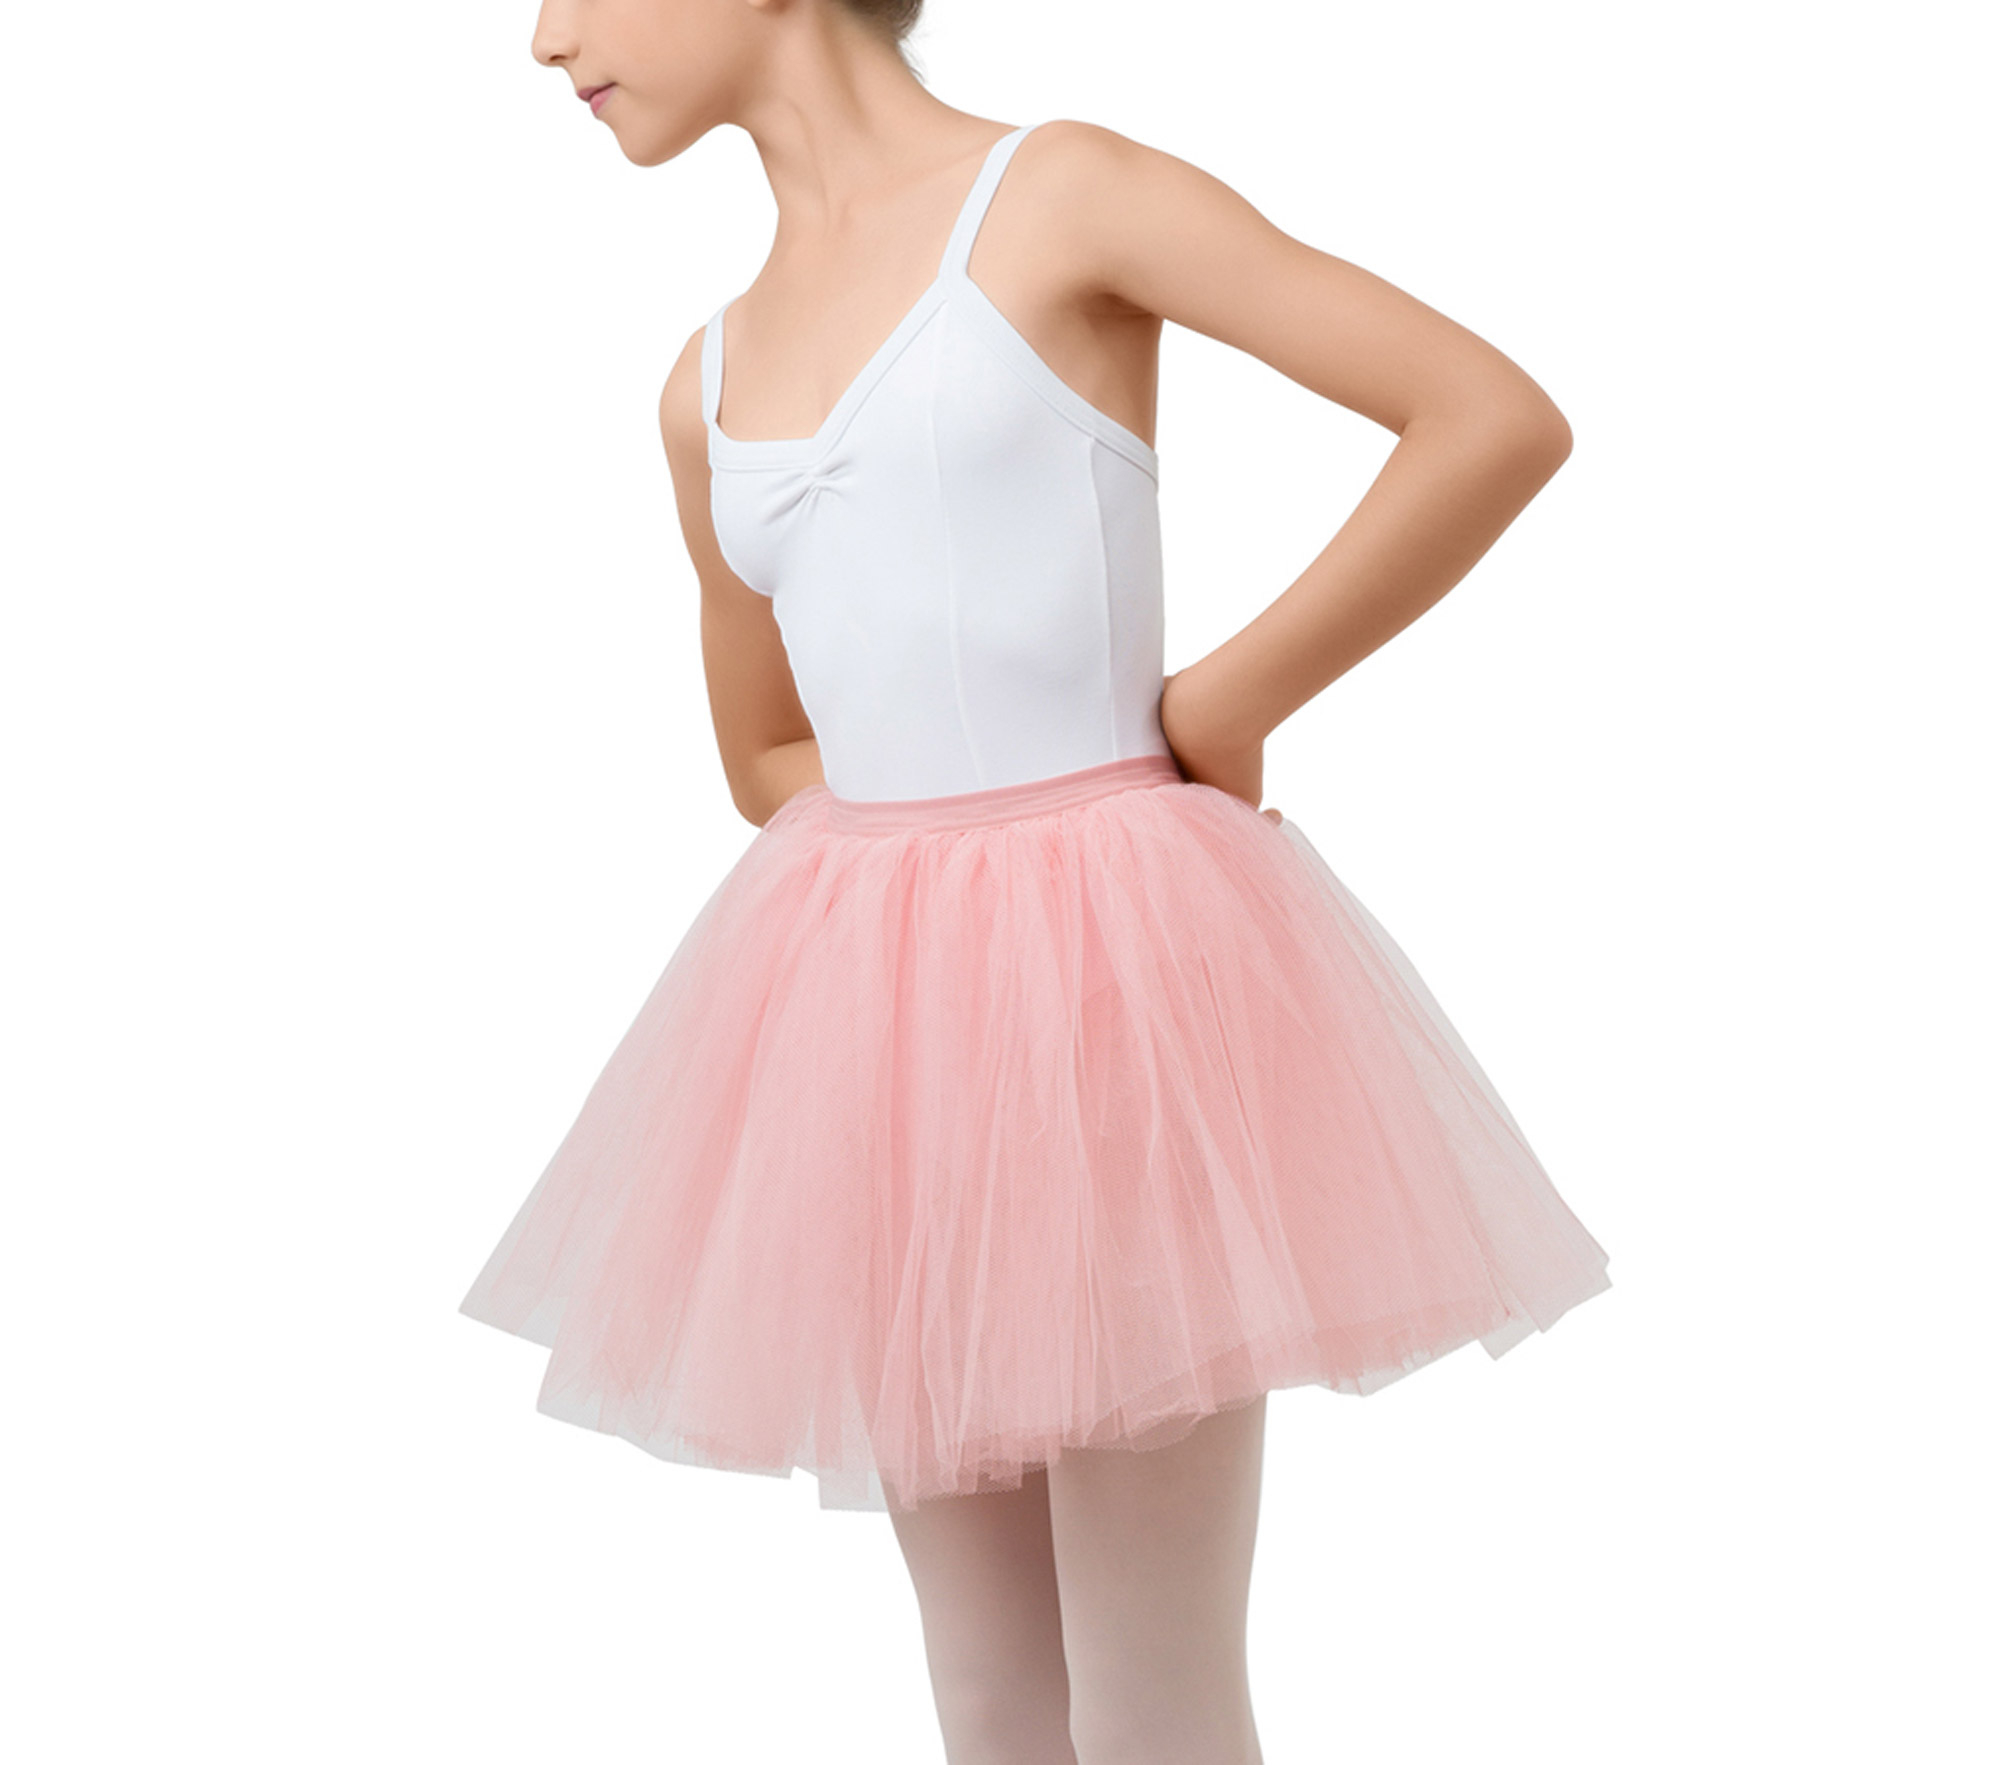 Jupon de tulle court fantaisie